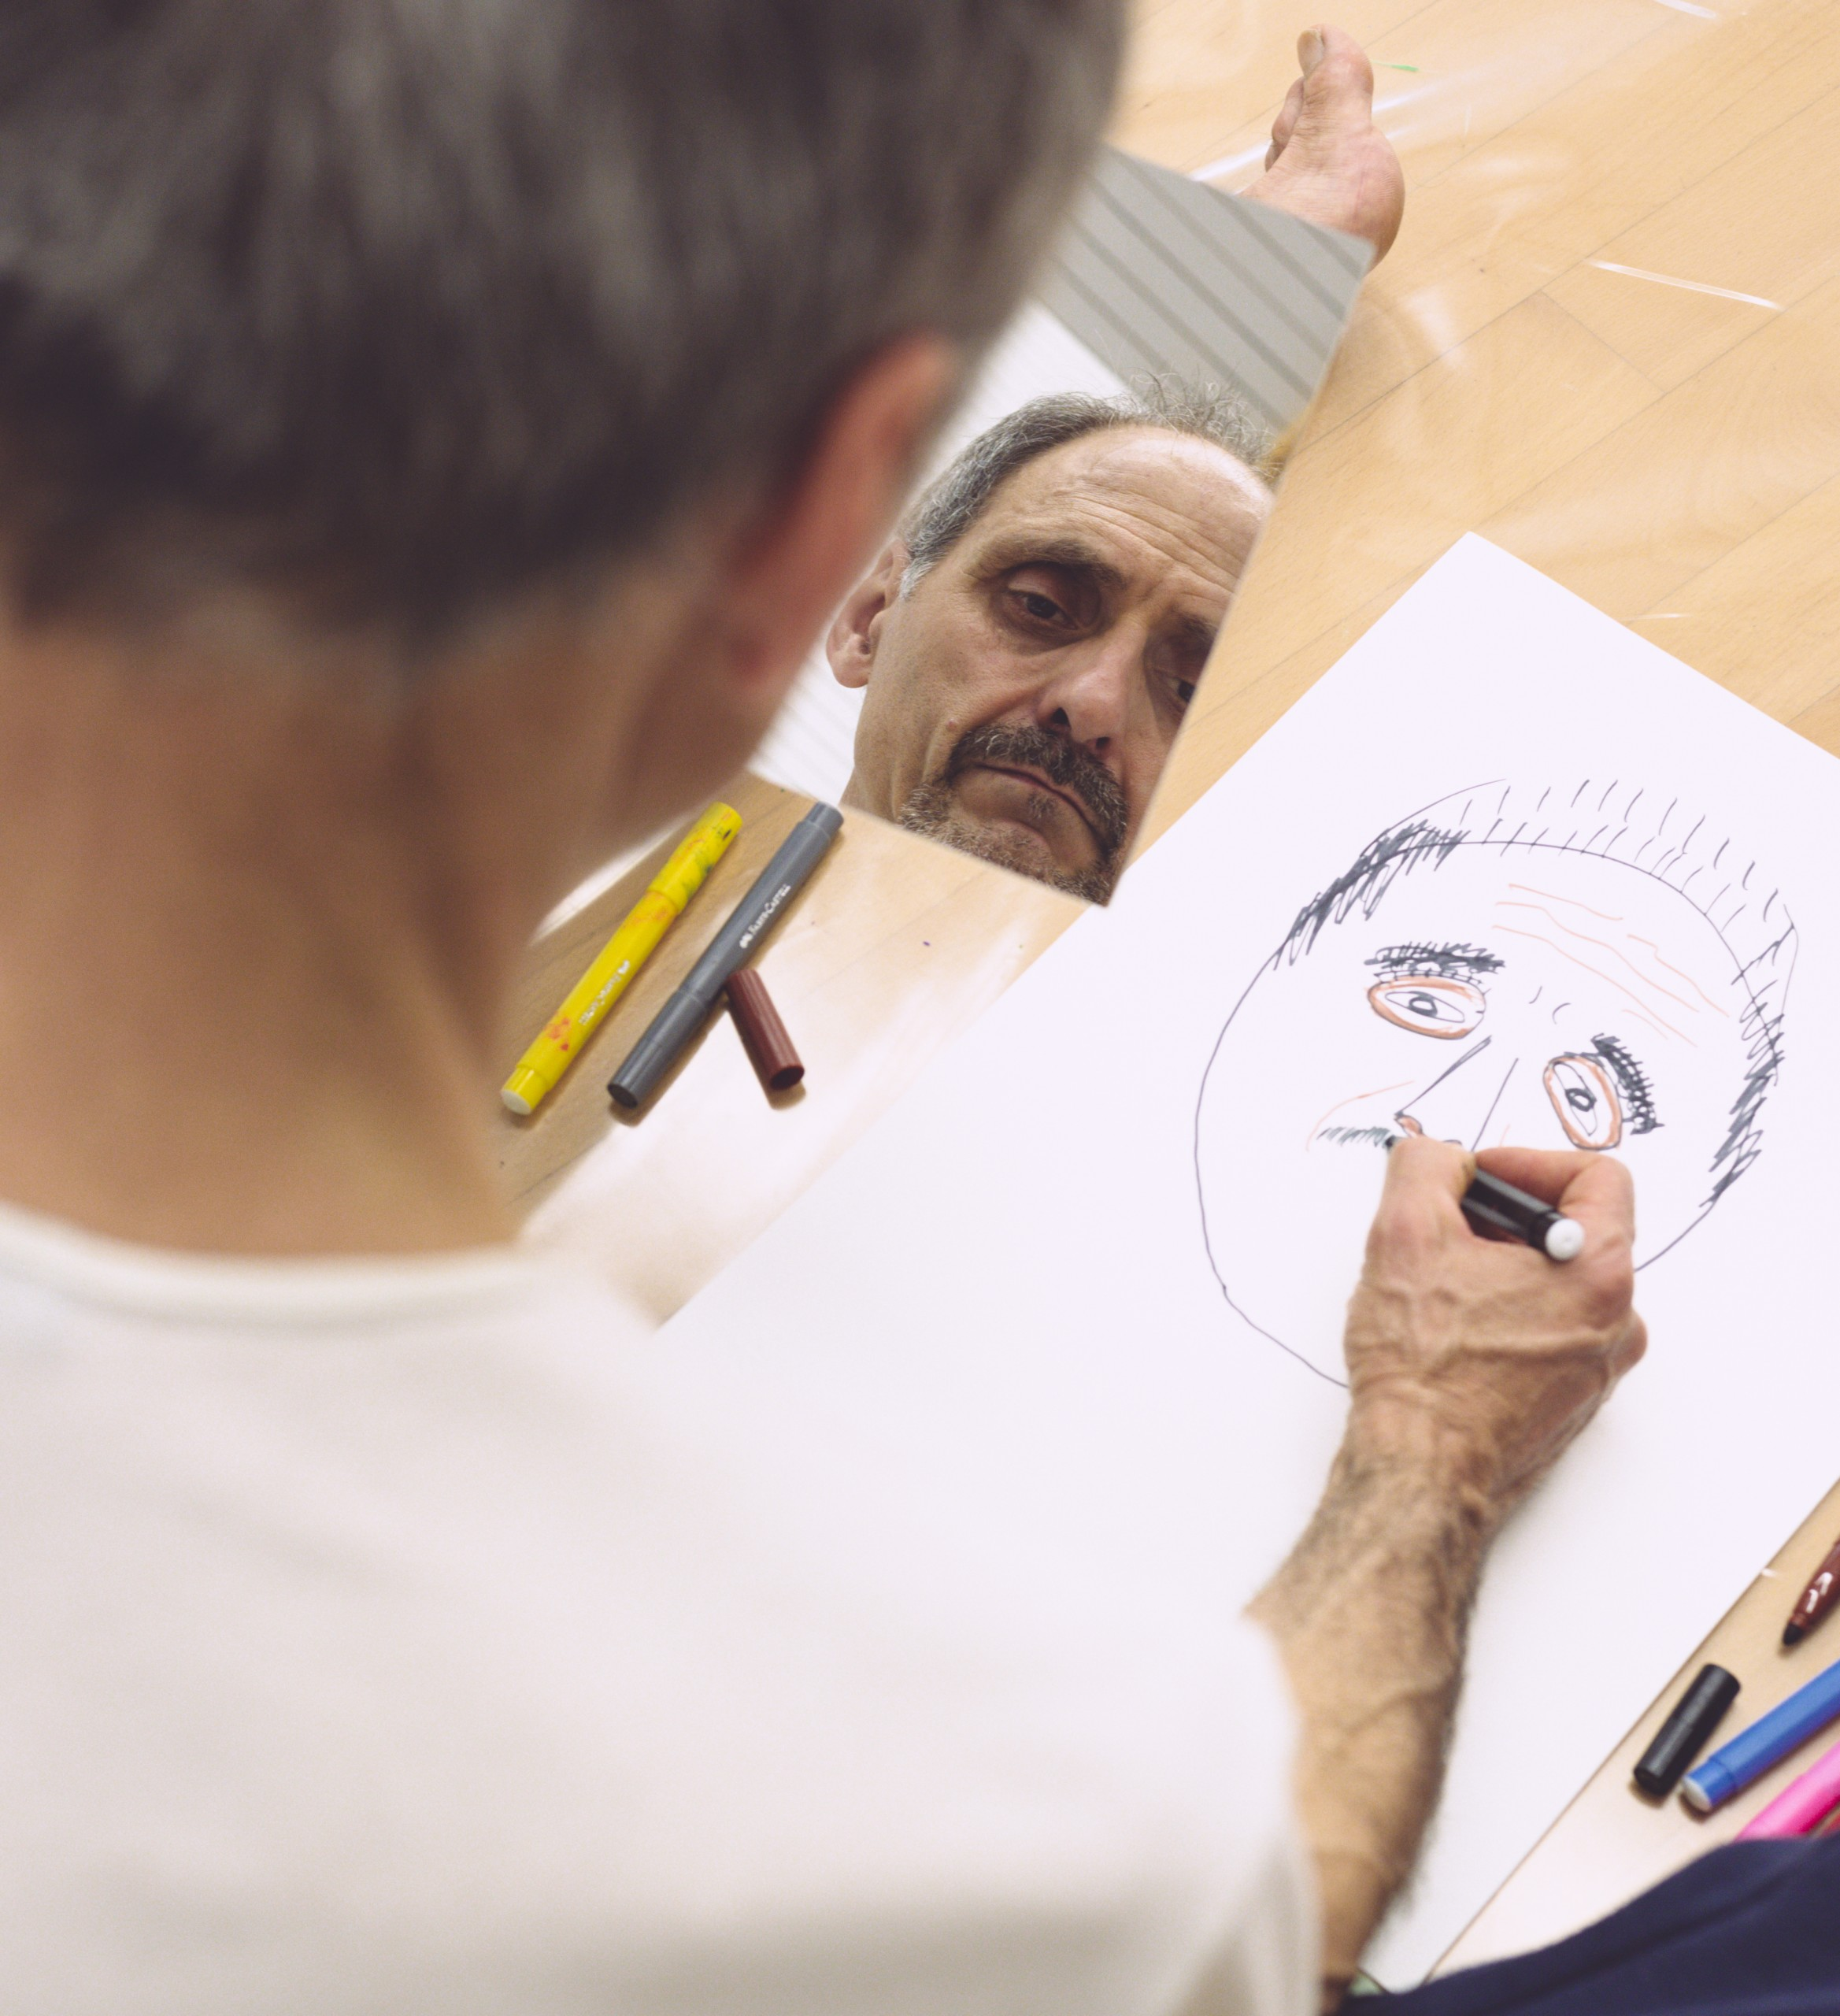 man drawing with mirror